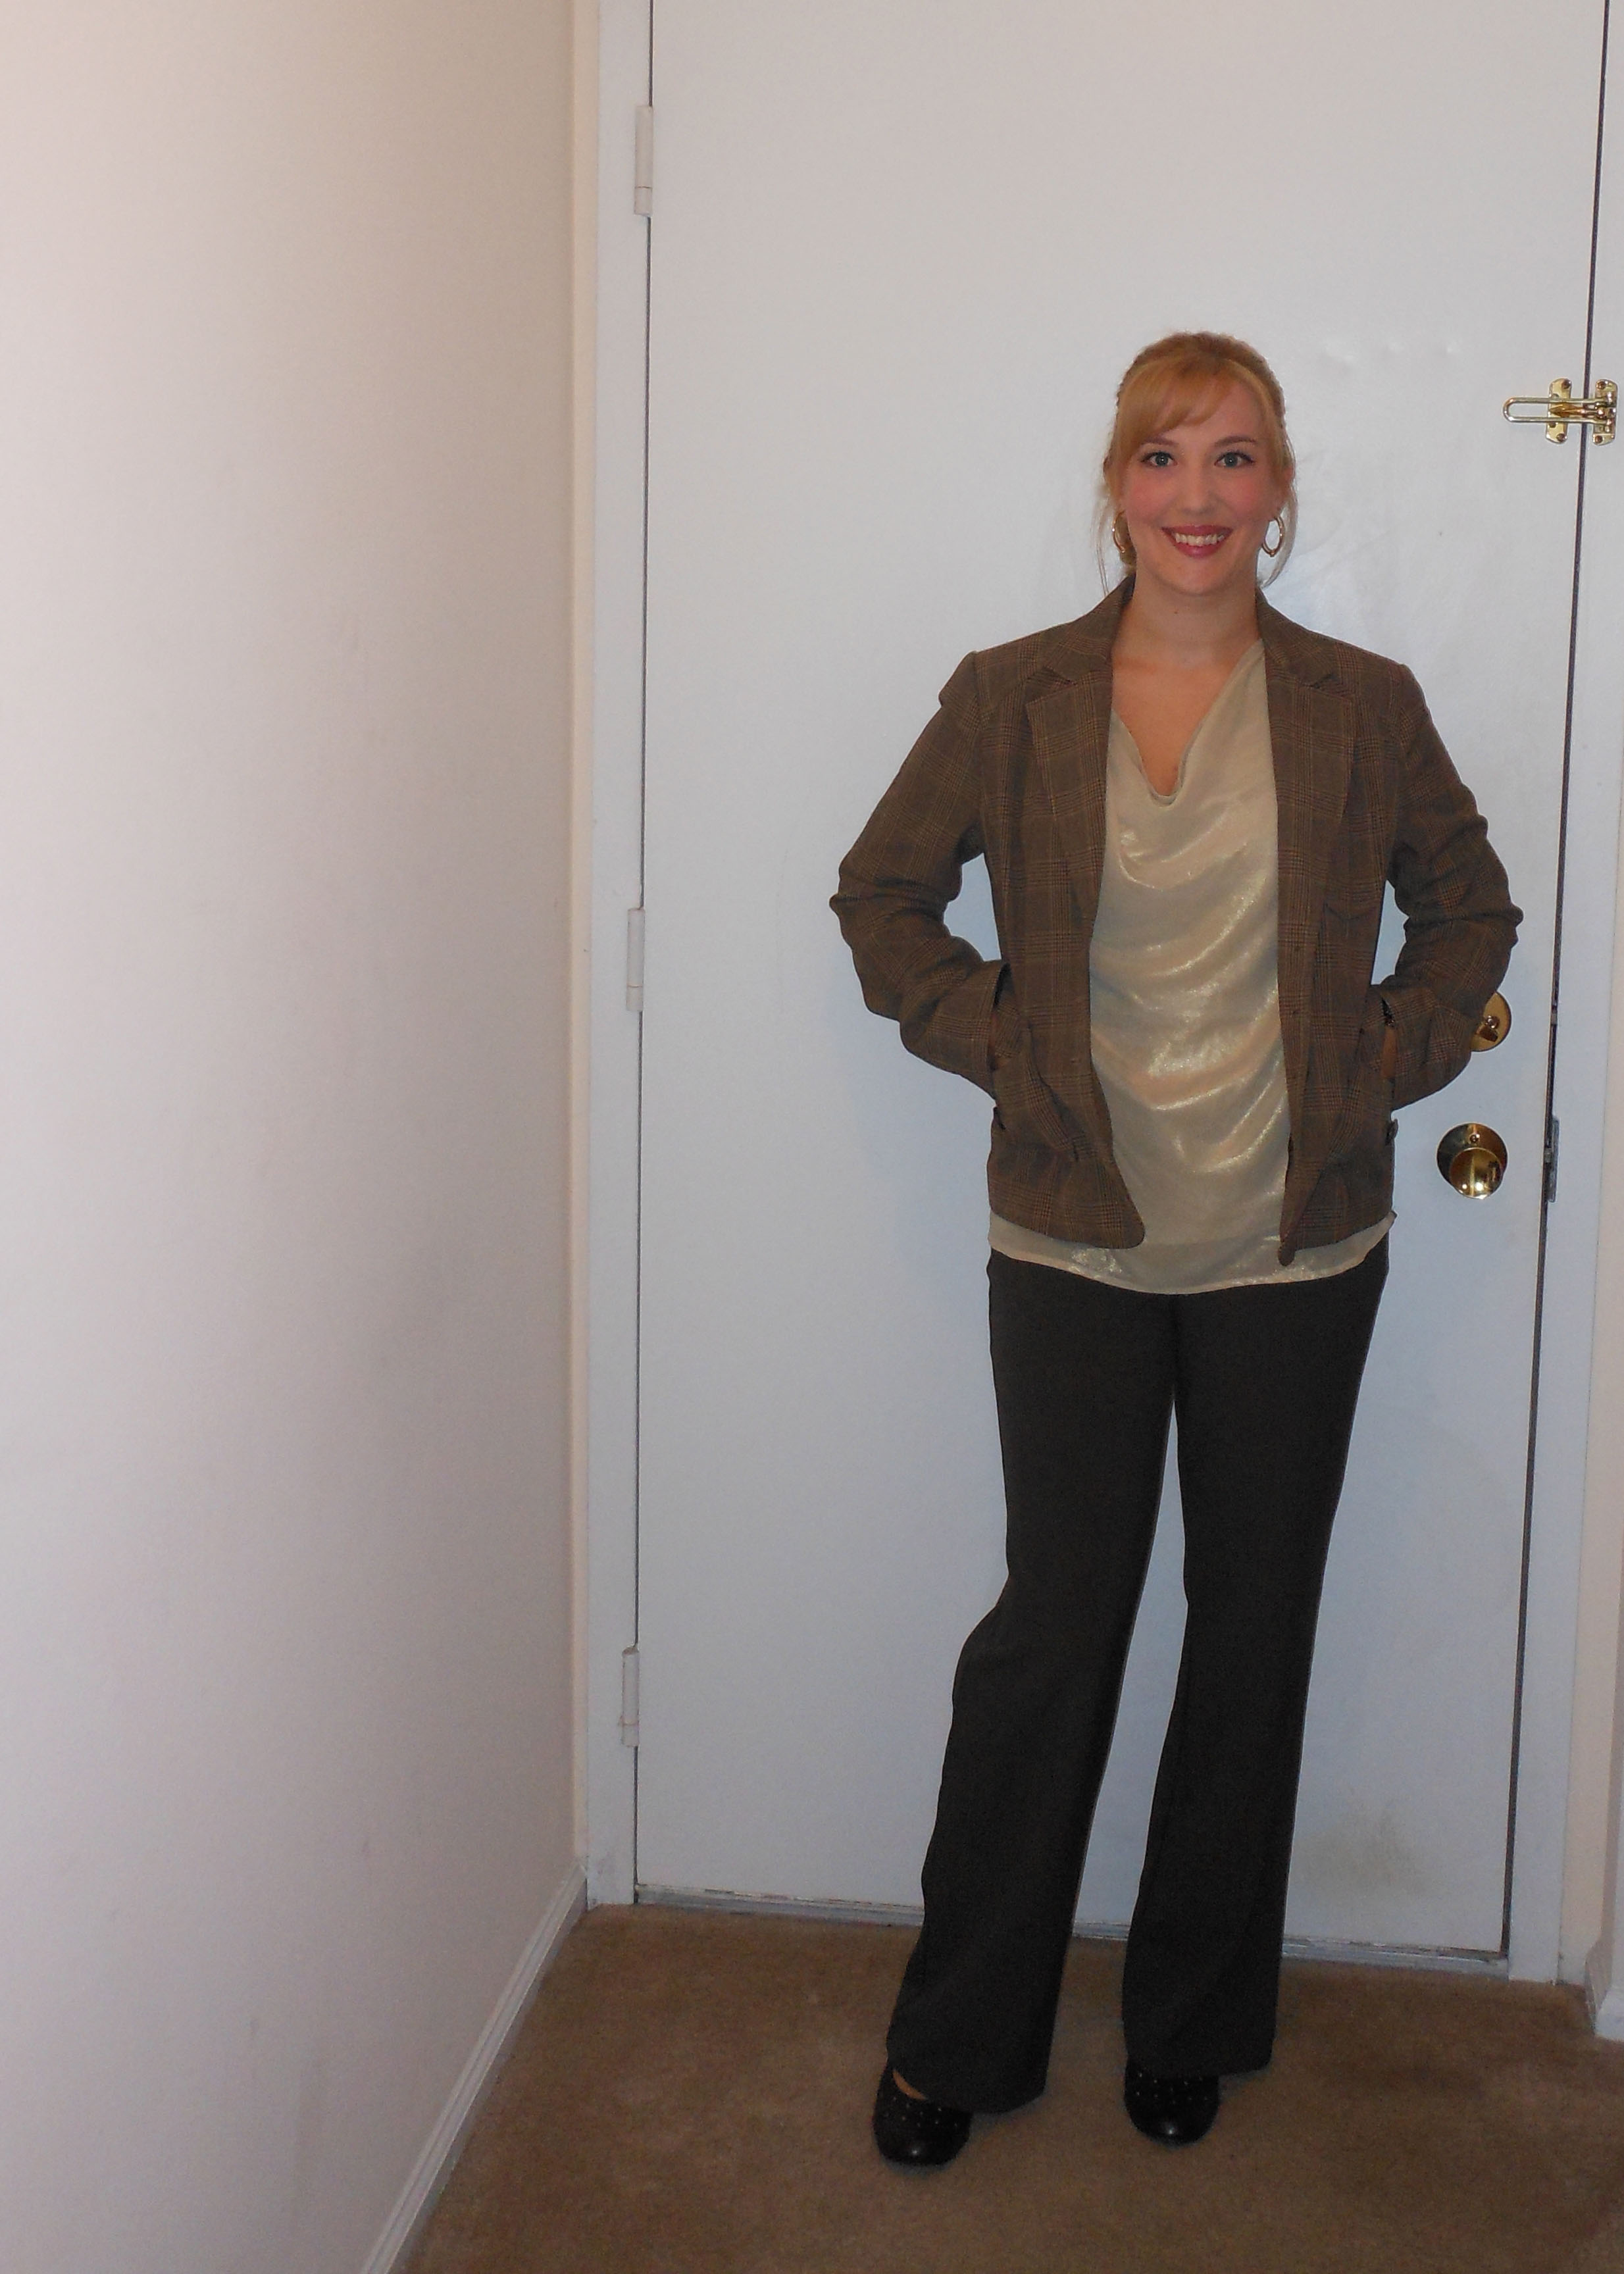 8e816dbd1330 Brown blazer  (thrifted.) Gold cowl neck blouse  JC Penney. Gold earrings  JC  Penney. Brown trousers  NY Co. Brown pumps  (thrifted.) Gold watch  Target.